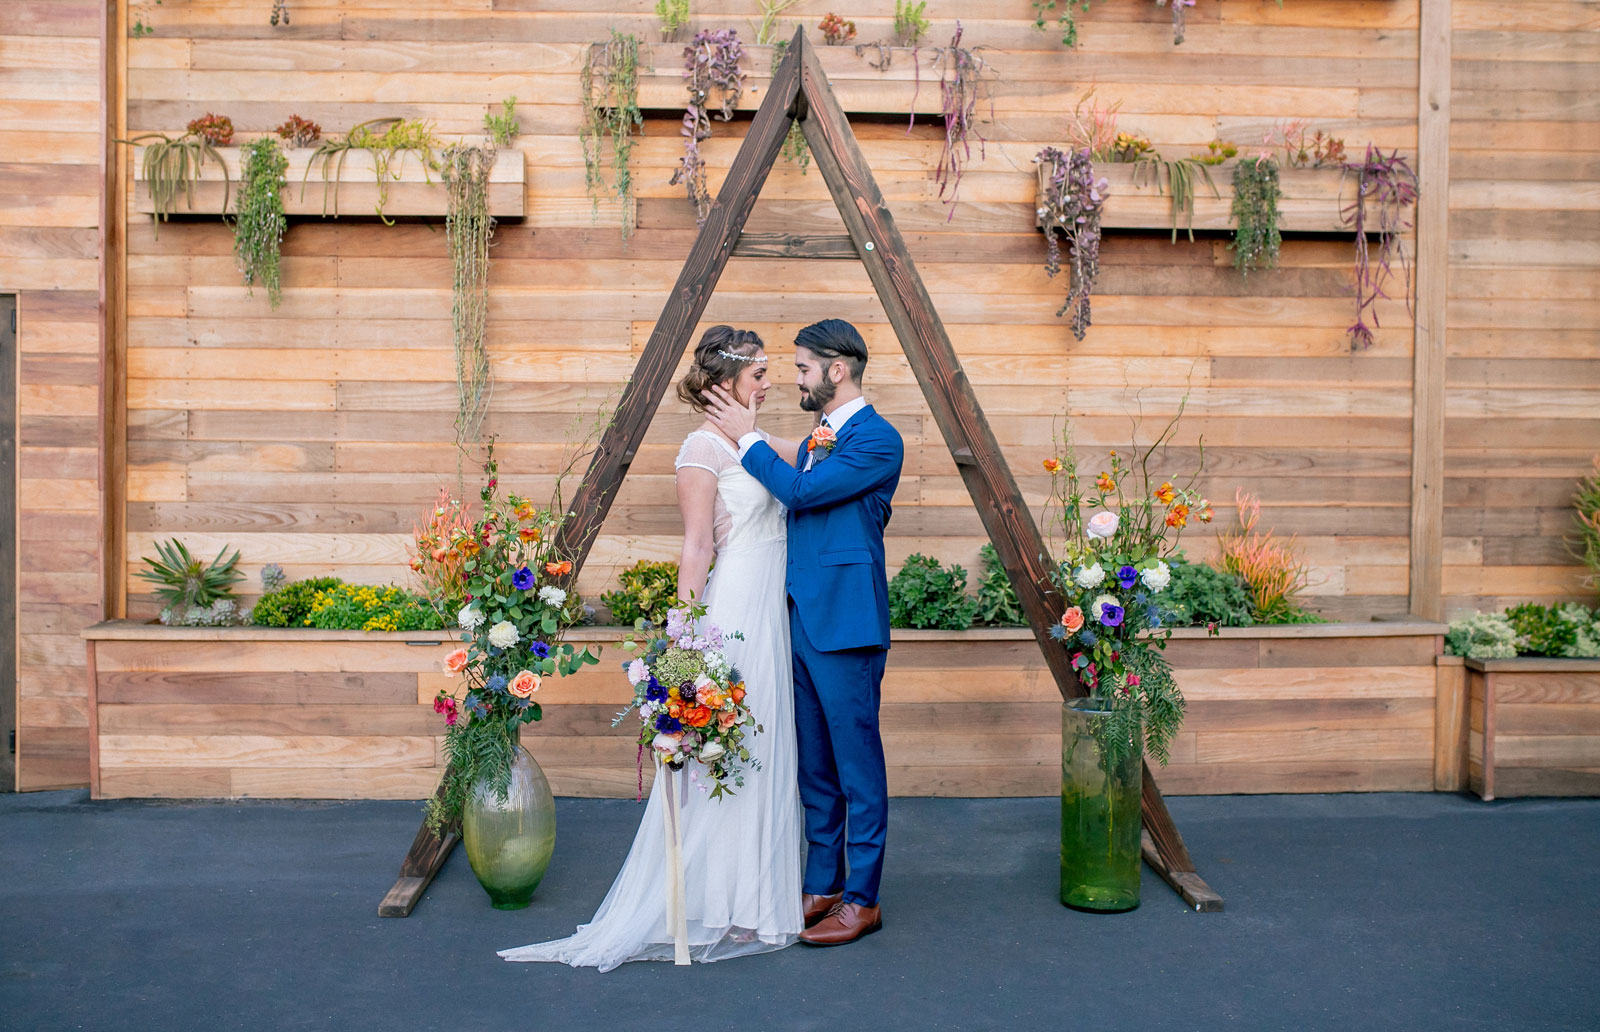 Ideas For A Frames Wedding Ceremony Arches Style Motivation